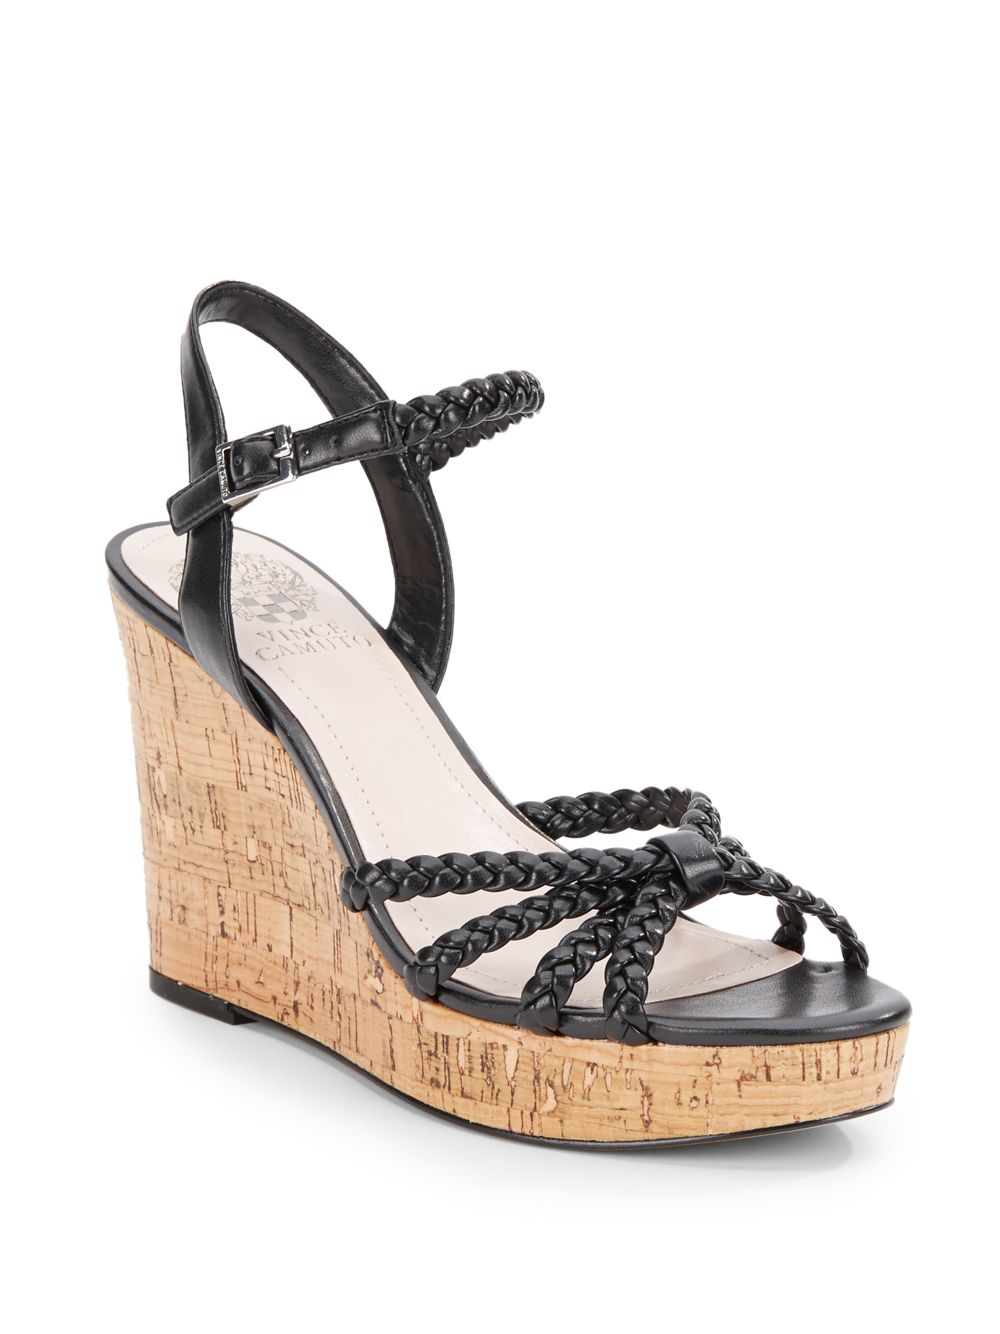 9cd2db309bf Lyst - Vince Camuto Trudy Braided Strappy Cork Wedge Sandals in Black